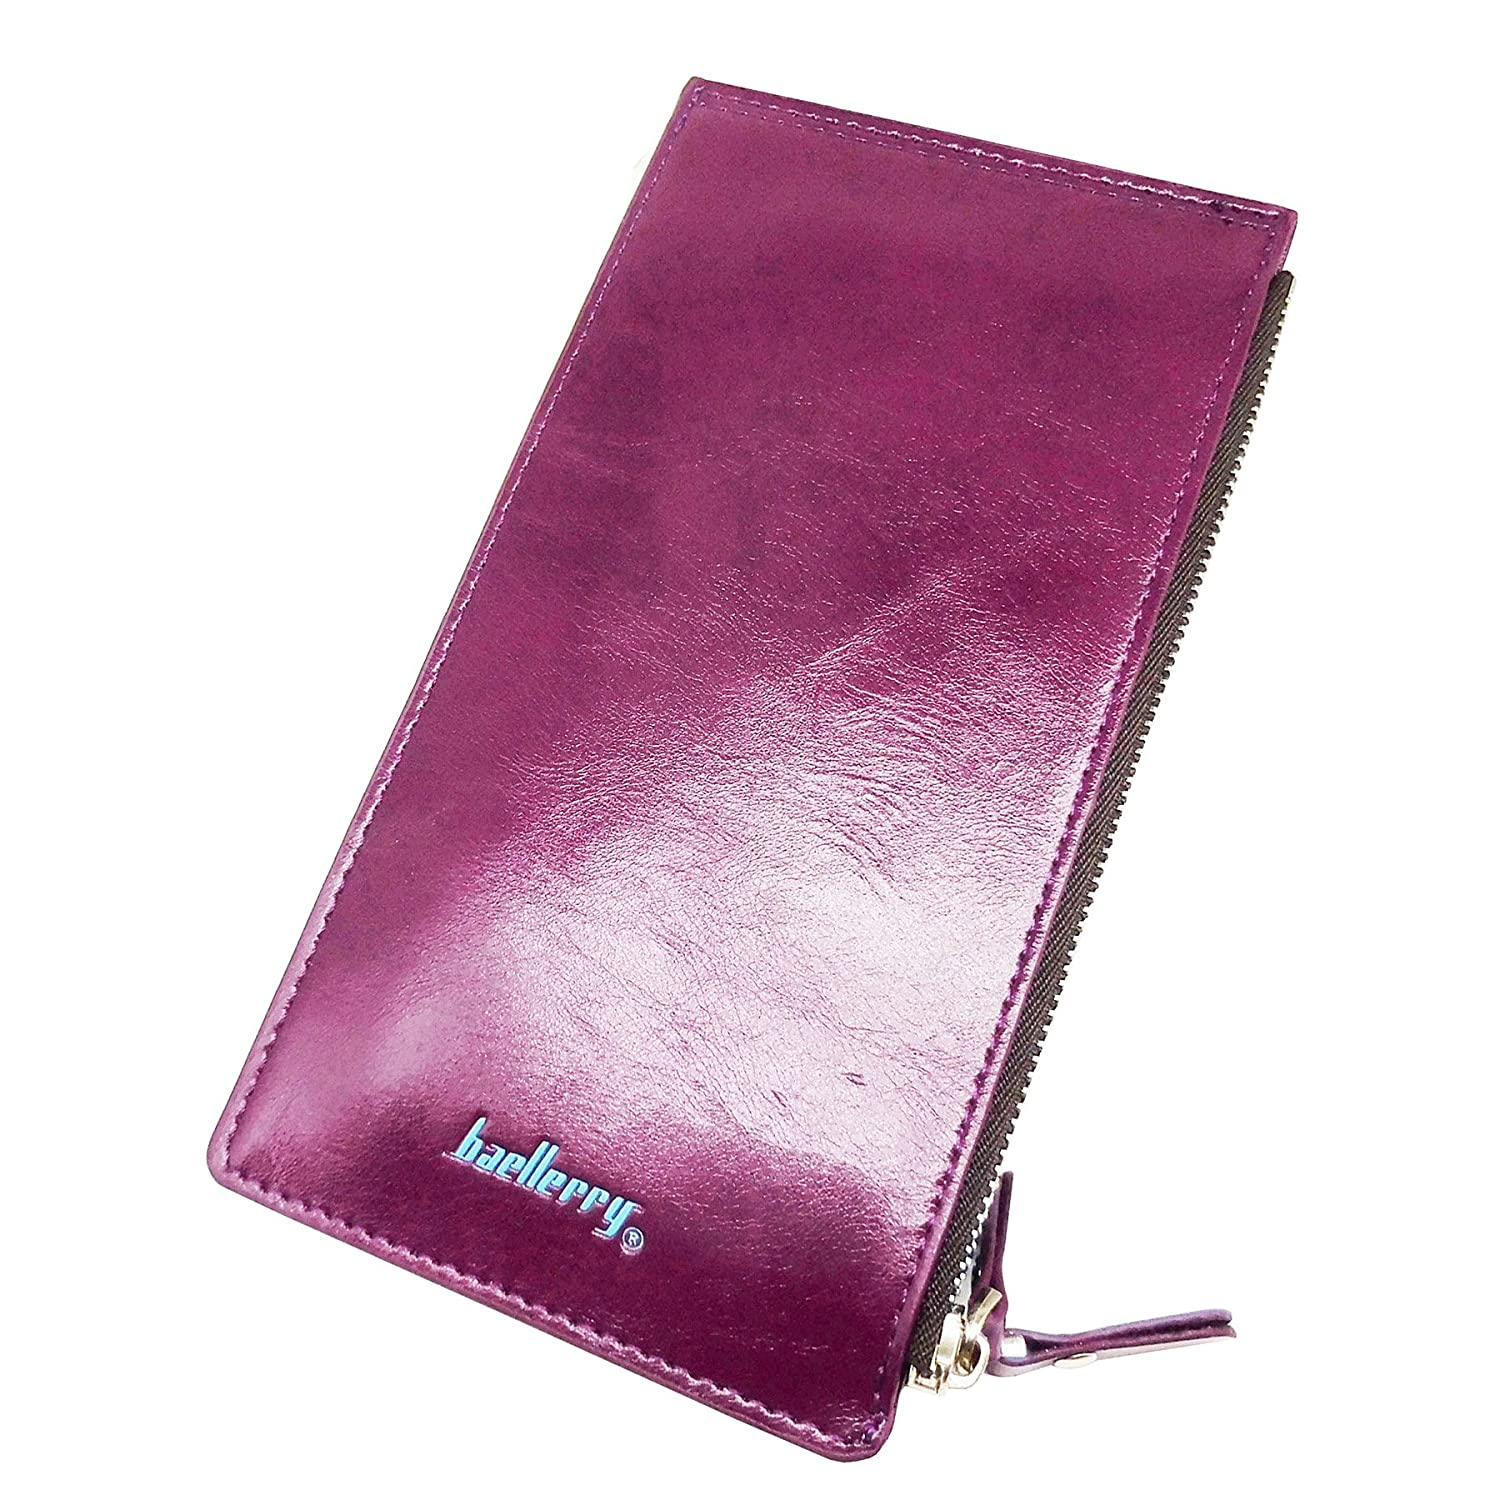 Card Holder Coin Purse Women's clutch wallet Oil Wax Leather Money Clip